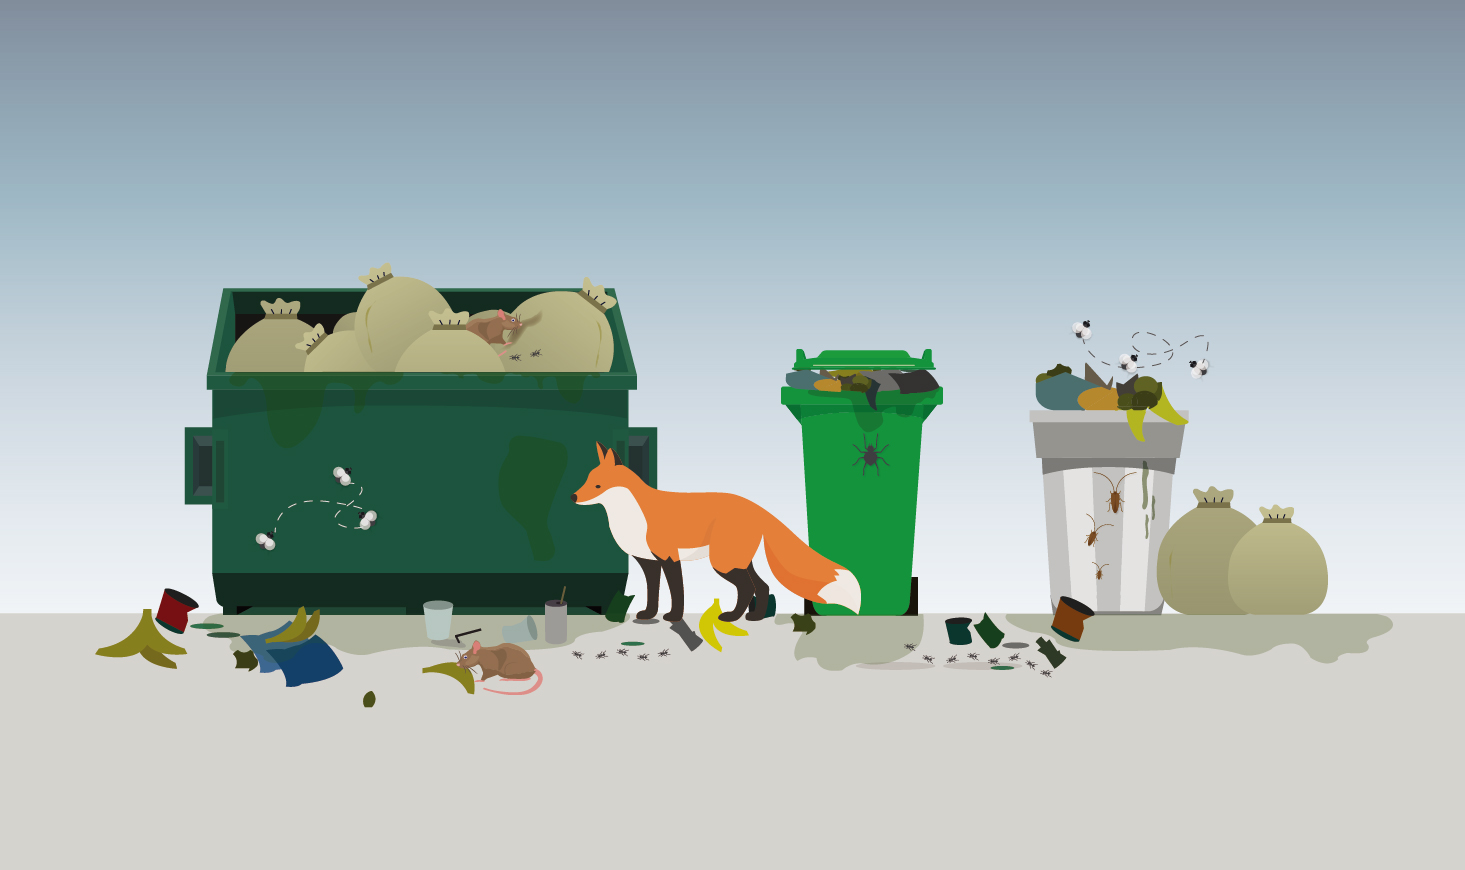 Overflowing Garbage Bins 5 Impacts On Health And